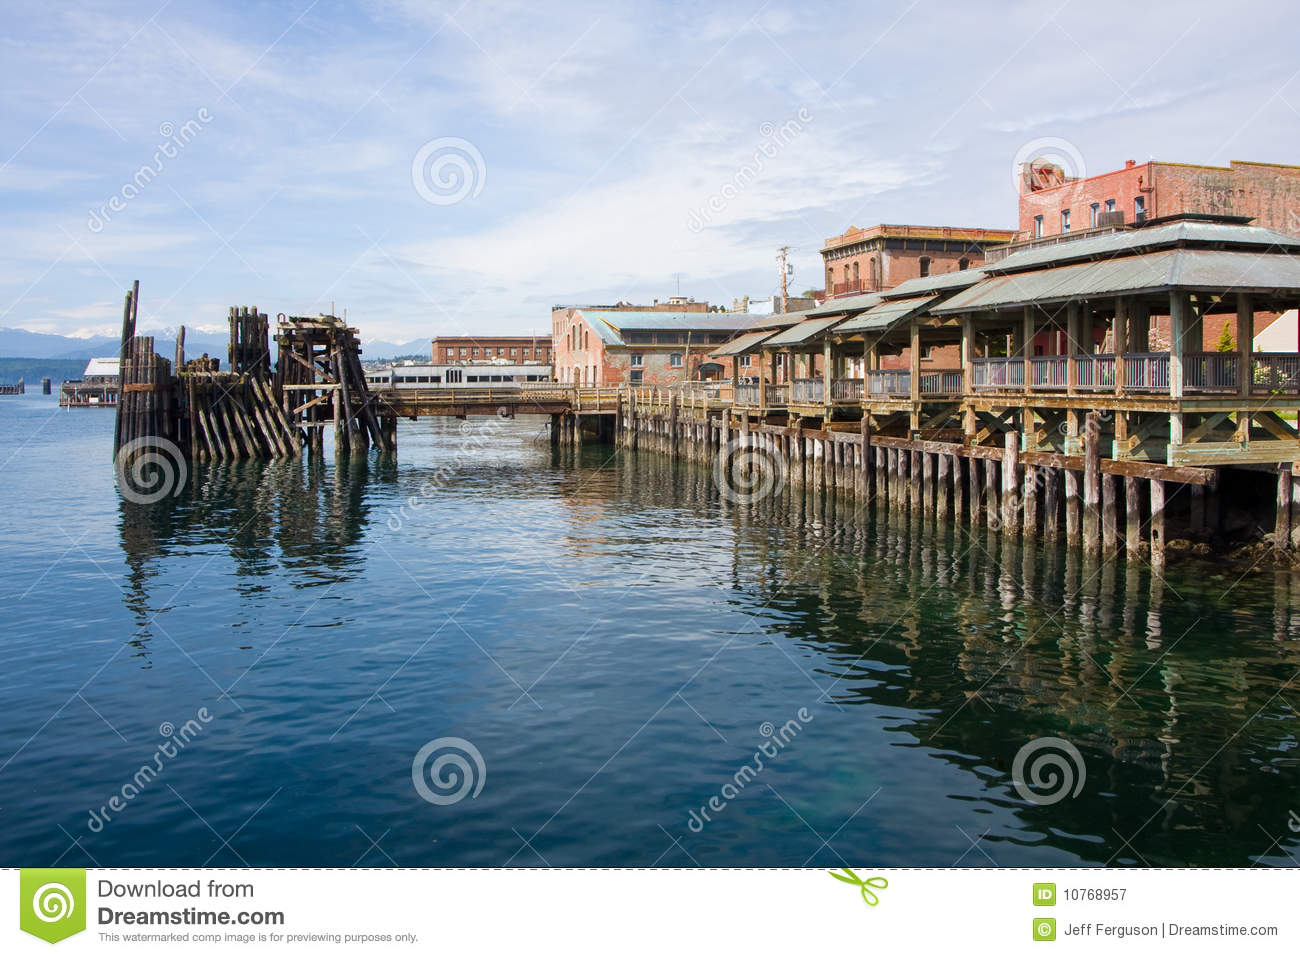 Pier at Port Townsend Washington